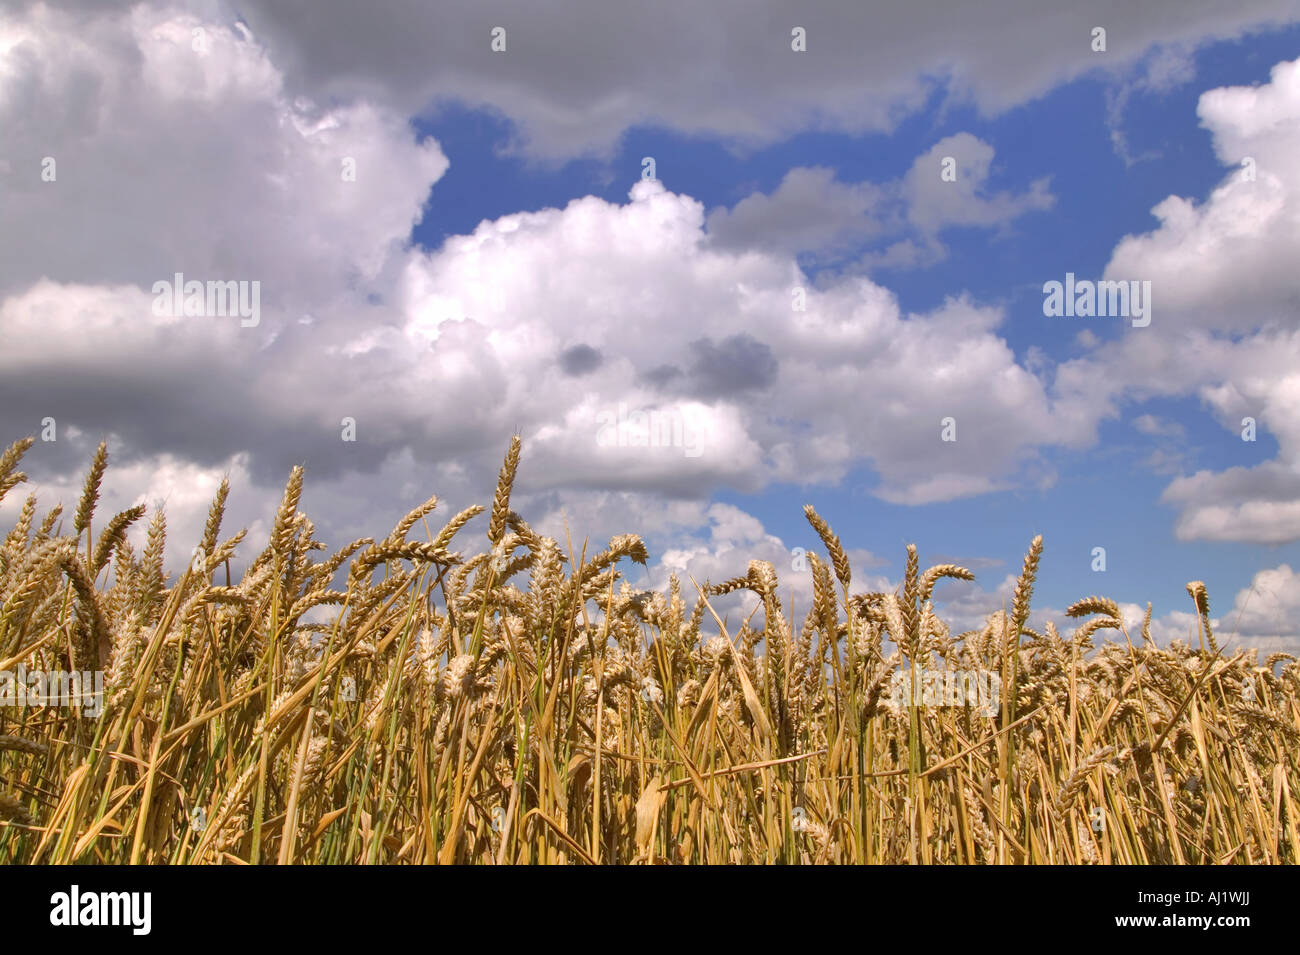 Wheat field under a blue cloudy sky - Stock Image